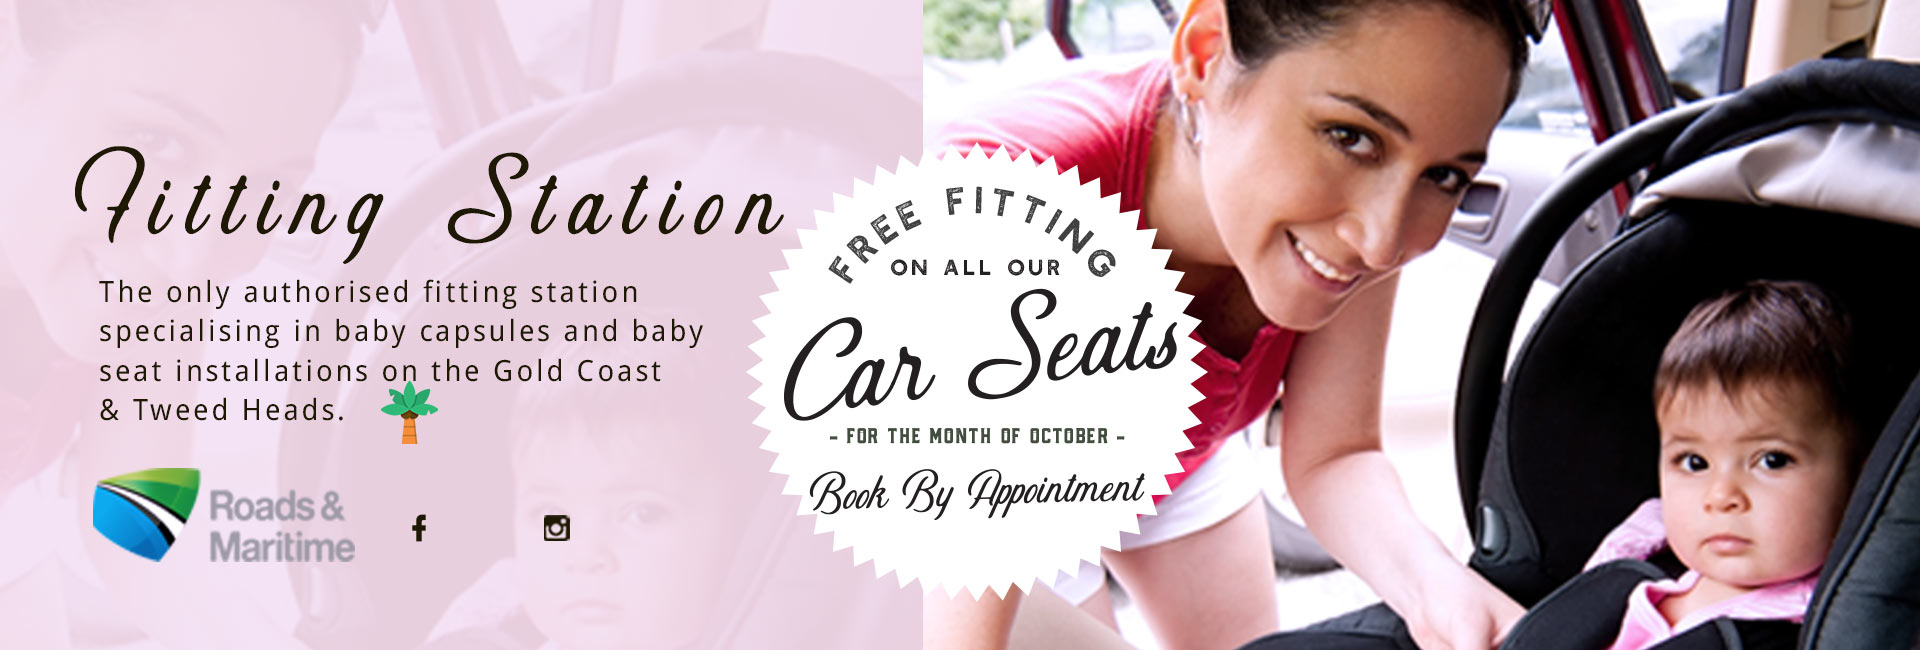 baby barn is an authorised fitting station specialising in baby casules and baby seat installations on the gold coast and tweed heads